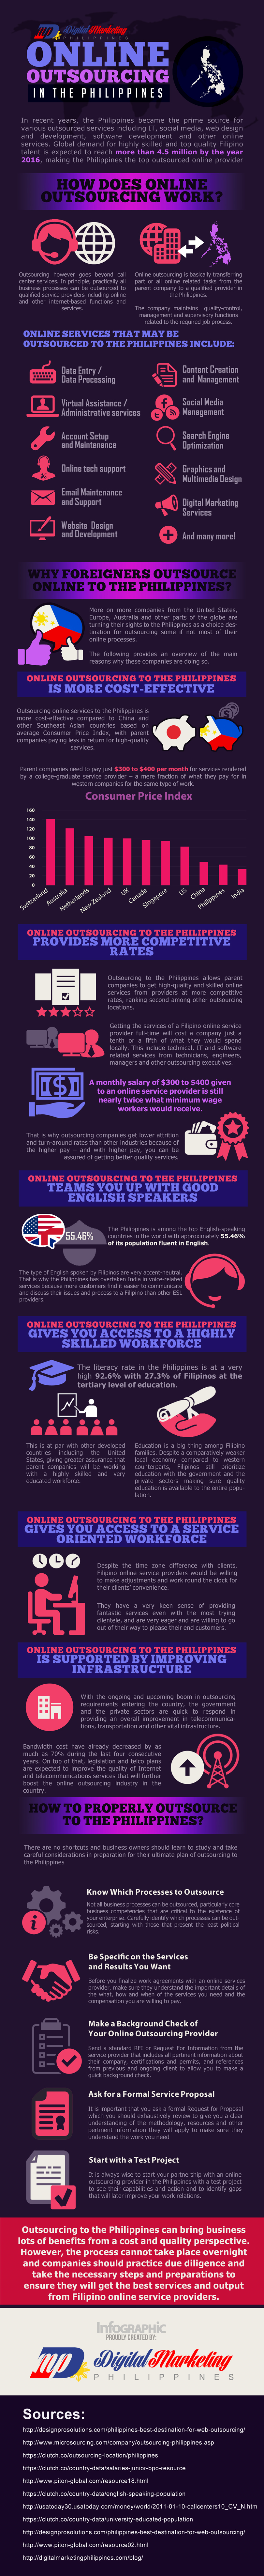 Online-Outsourcing-in-the-Philippines